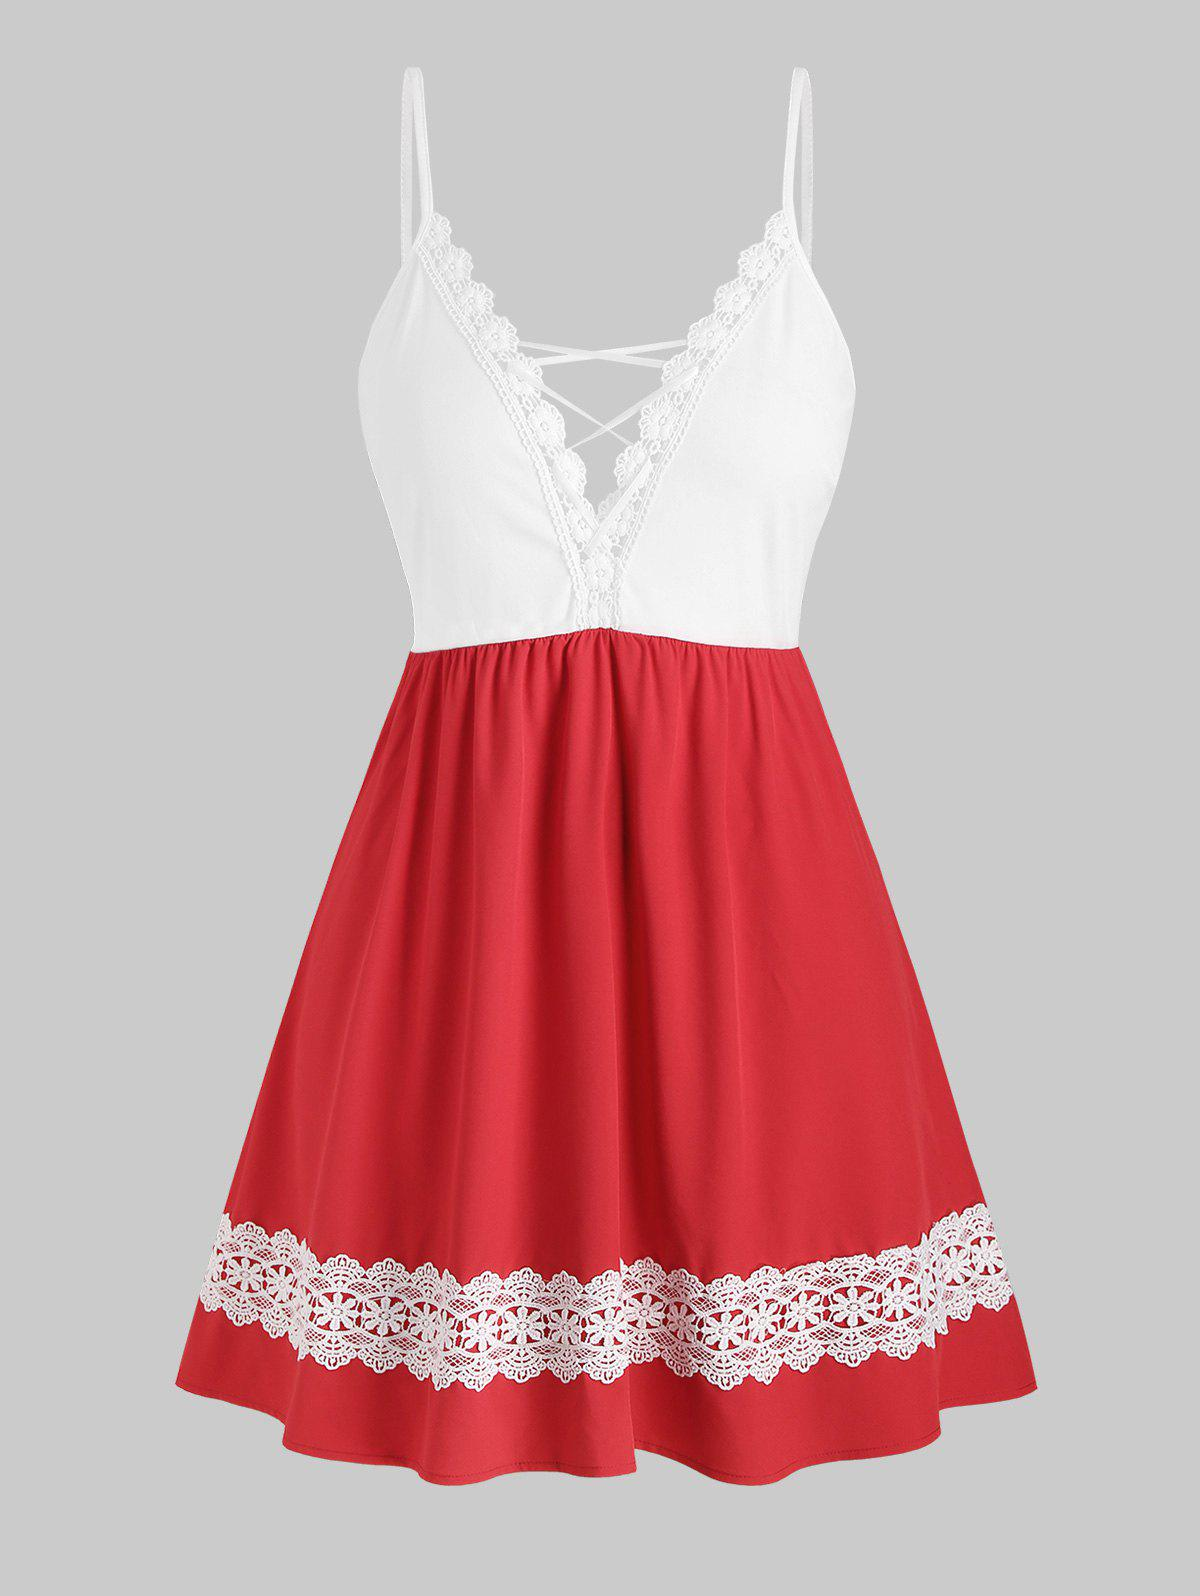 Lace Trim Lattice Colorblock Plus Size Cami Dress - RED L